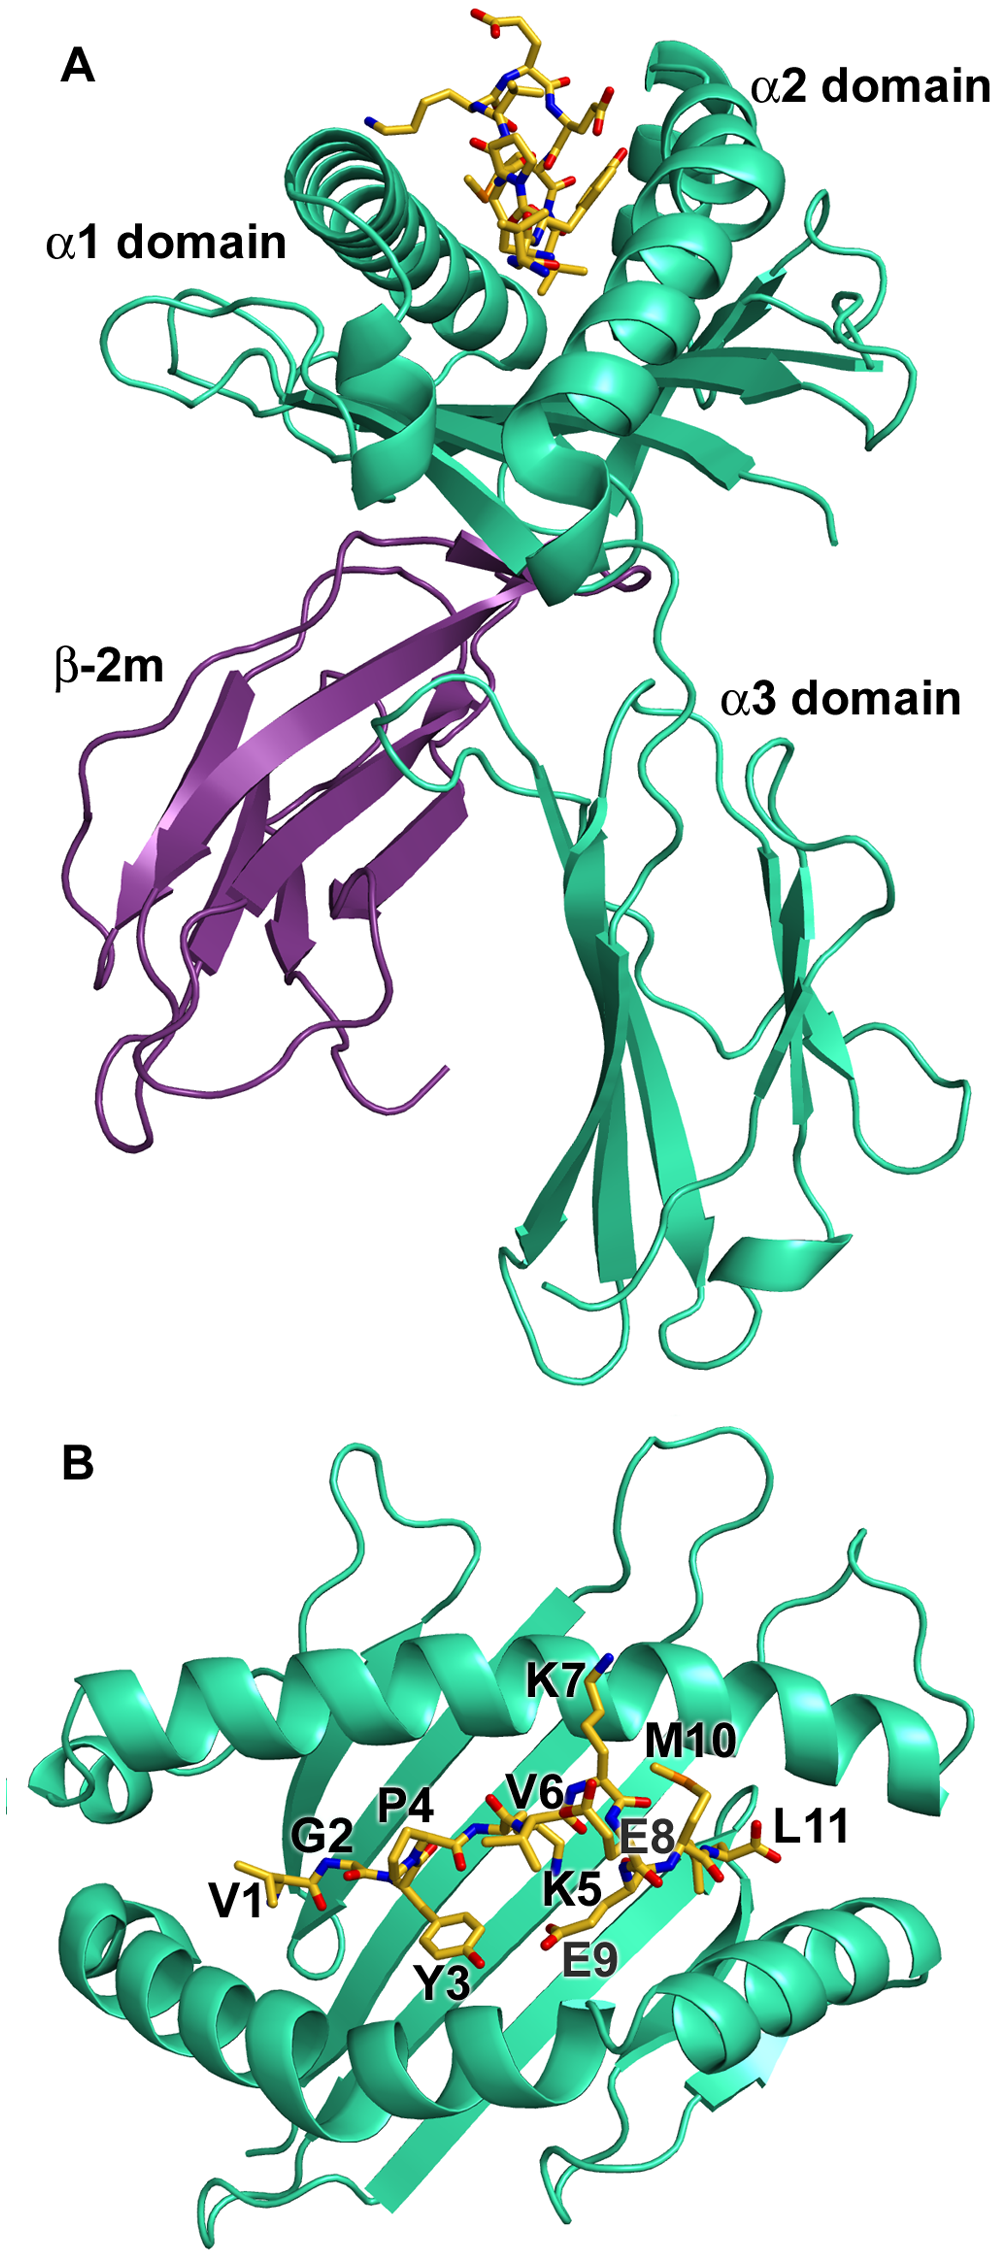 Overview of the structure of N*01301.